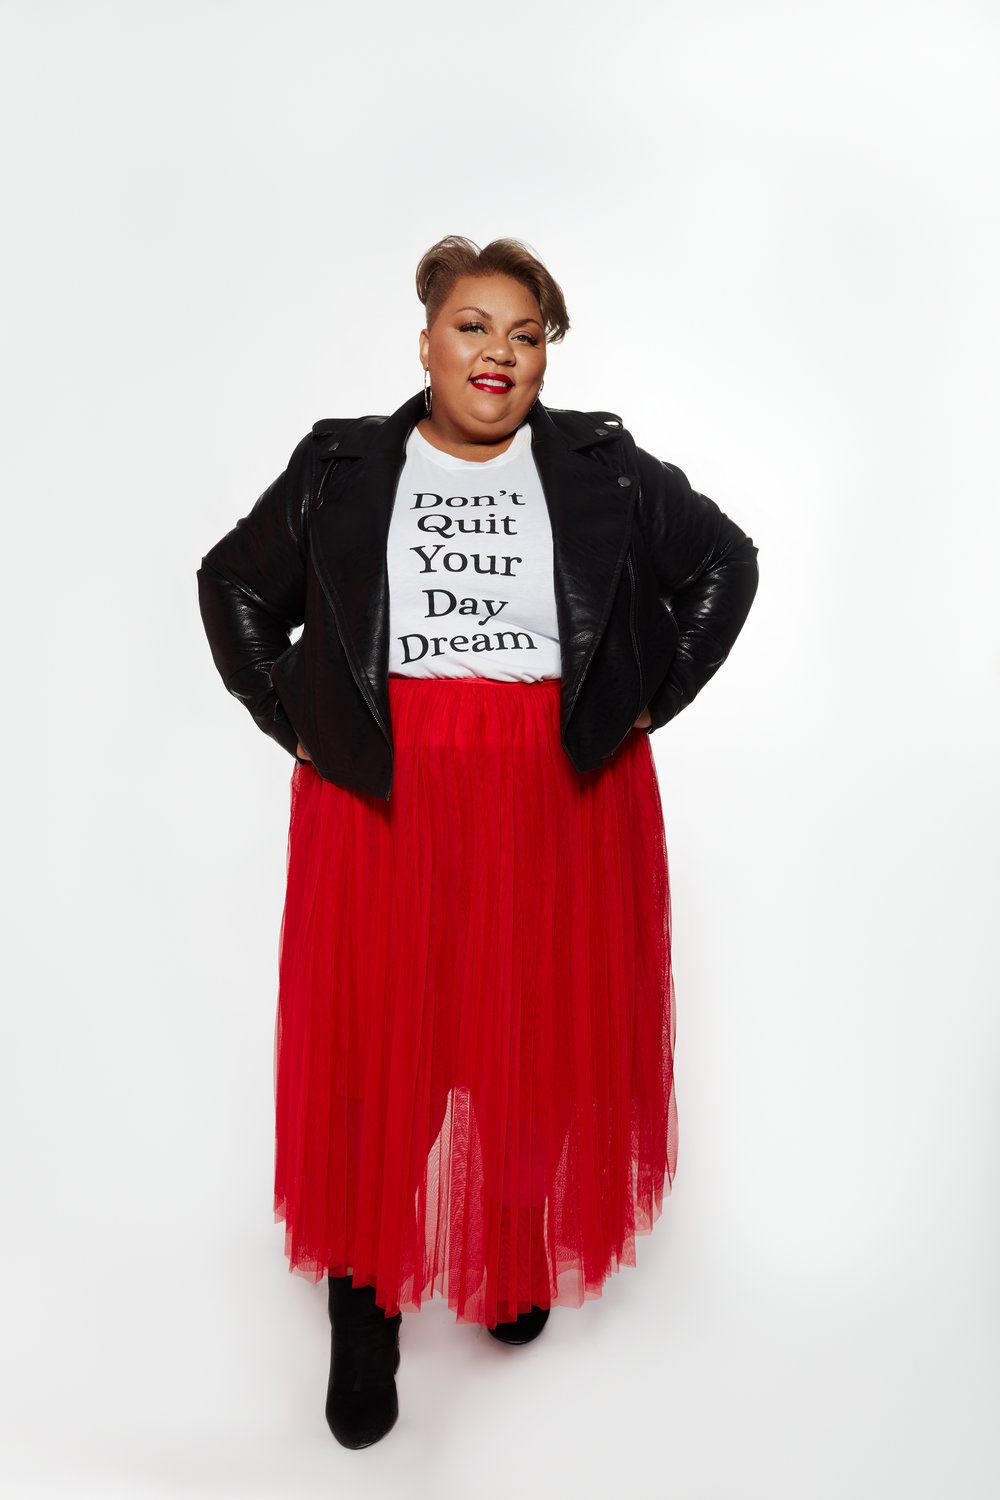 First Look: Don't Quit Your Daydream - I have to admit I'm obsessed with Tulle, so when Eloquii released this red tulle skirt I was all about it! I paired it with a graphic tee, Don't Quit Your Day Dream, which I felt was fitting for my personal mantra this year. Finished this look off with a black moto jacket, which is a new rocking staple to my wardrobe.I paired this look with a jeweled bootie, but trust me I'll be wearing some cute flats with this look as well. Shop the look here: graphic tee, red tulle skirt,and black moto jacket.